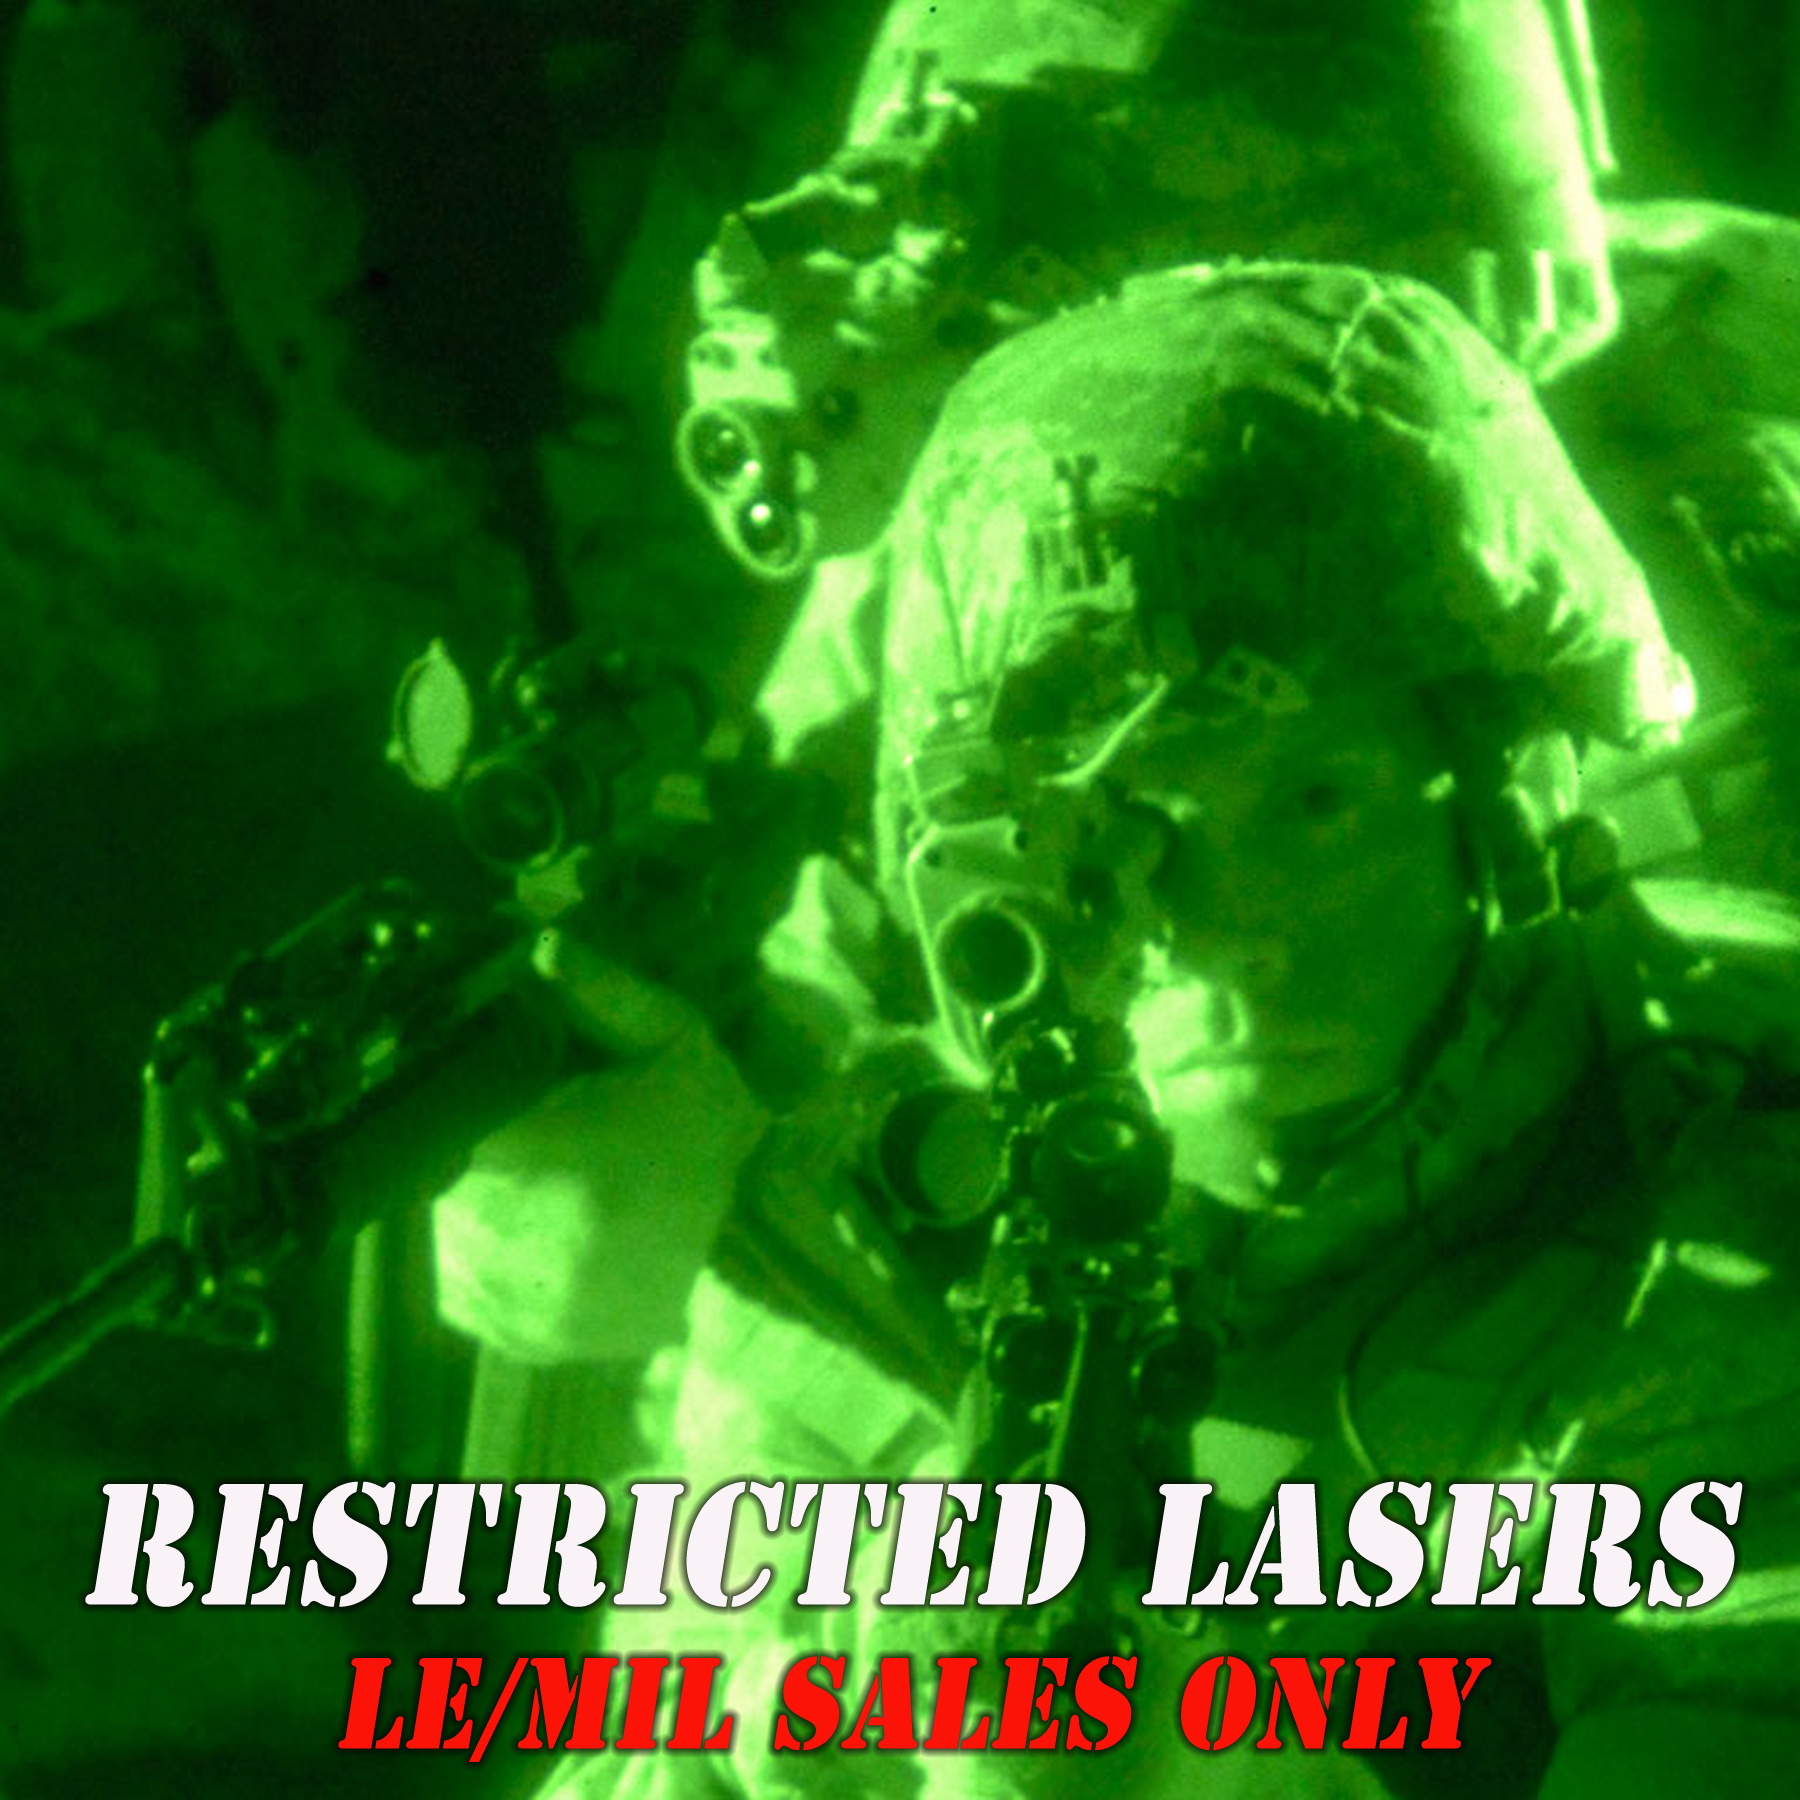 Restricted Lasers